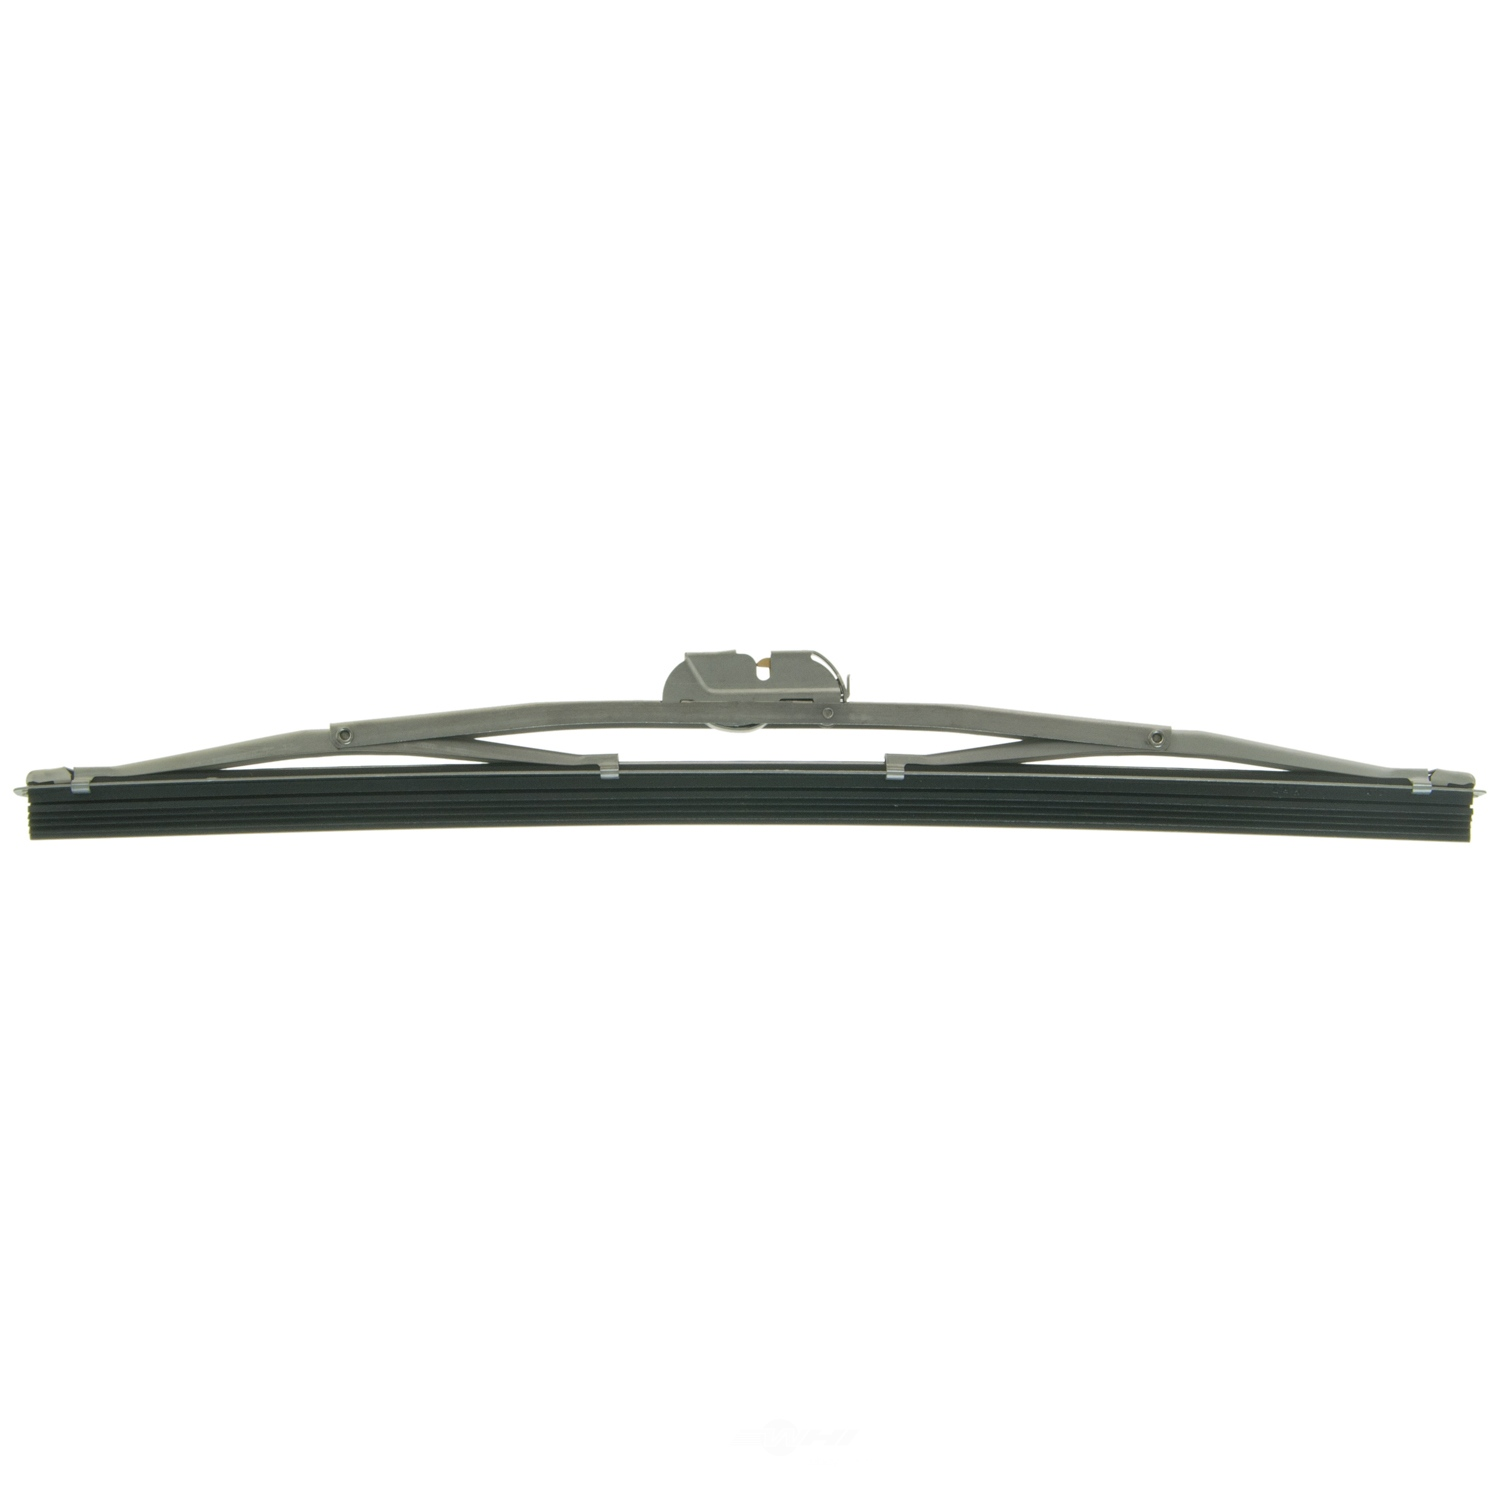 ANCO WIPER PRODUCTS - Vintage Wiper Blade - ANC 20-11